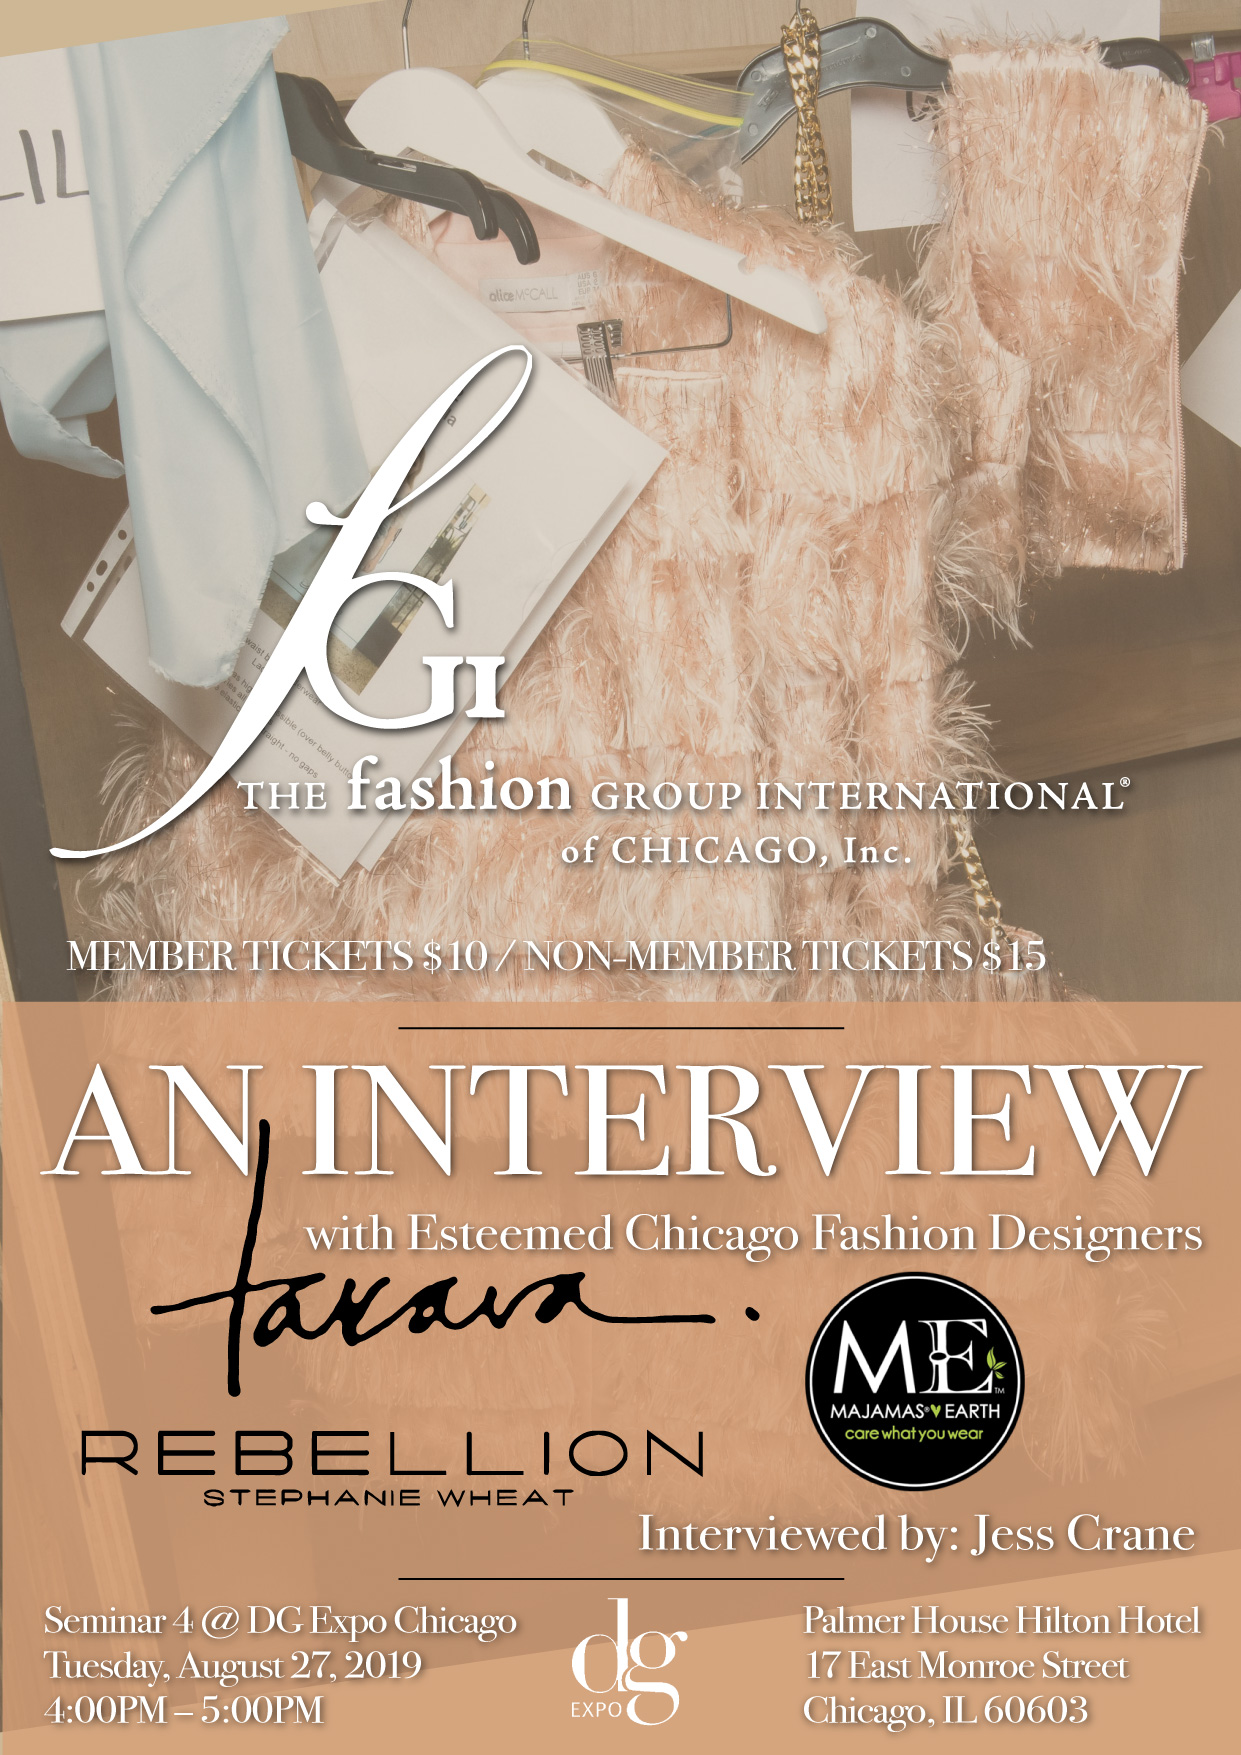 fgi chicago event seminar interview with chicago fashion designers dg expo fabric fashion design